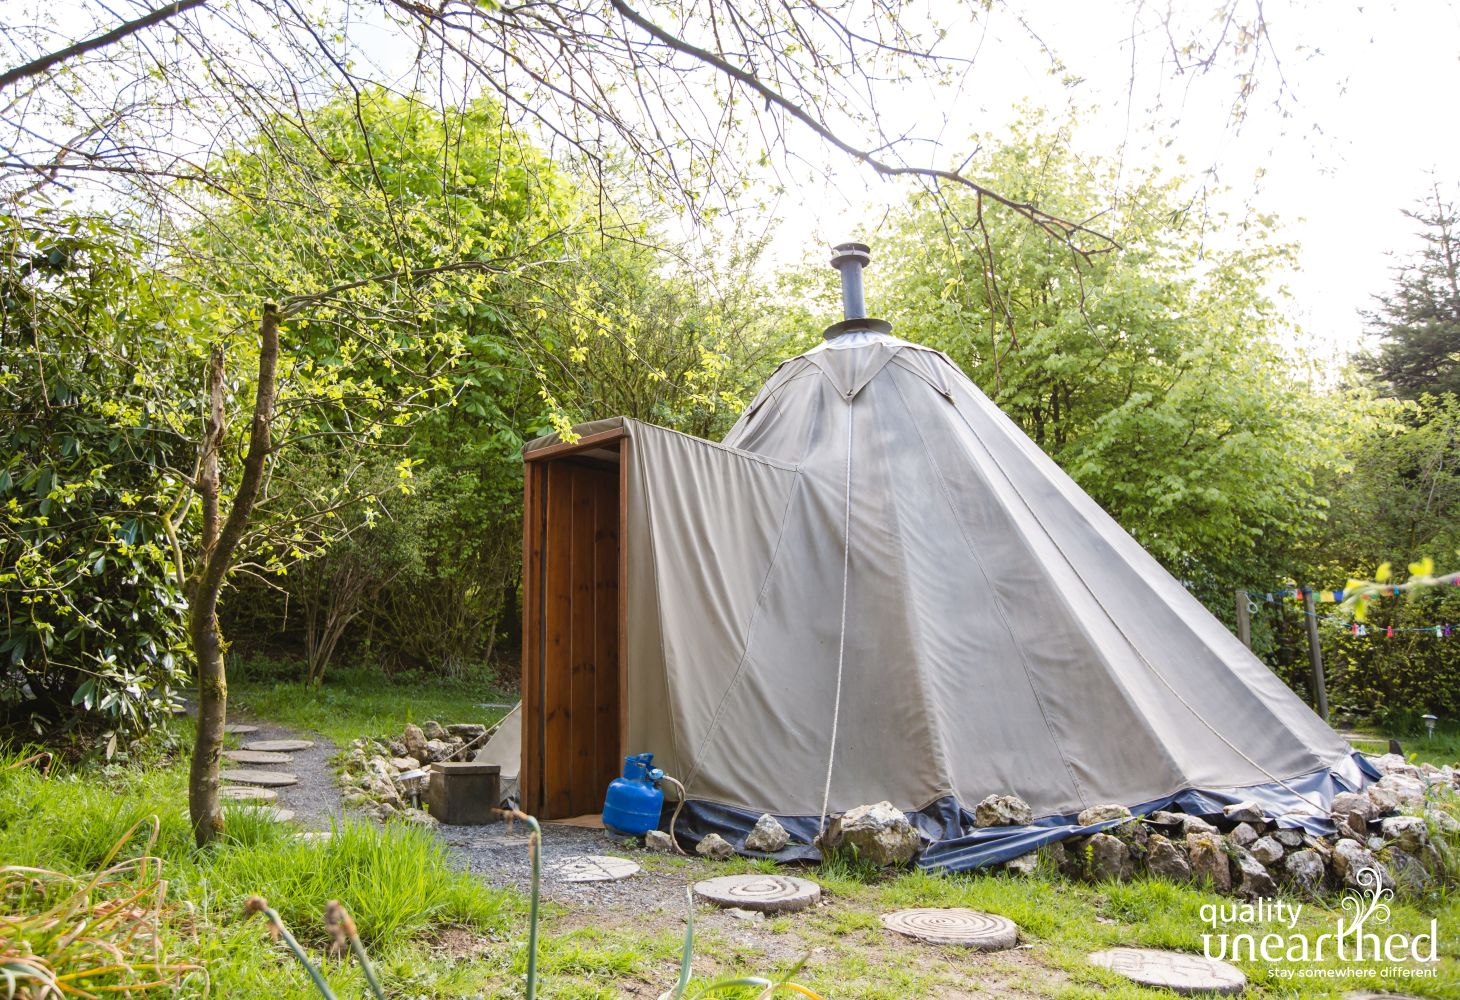 The Lavvu | Glamping Tipis in Carmarthenshire | Sleeps 4